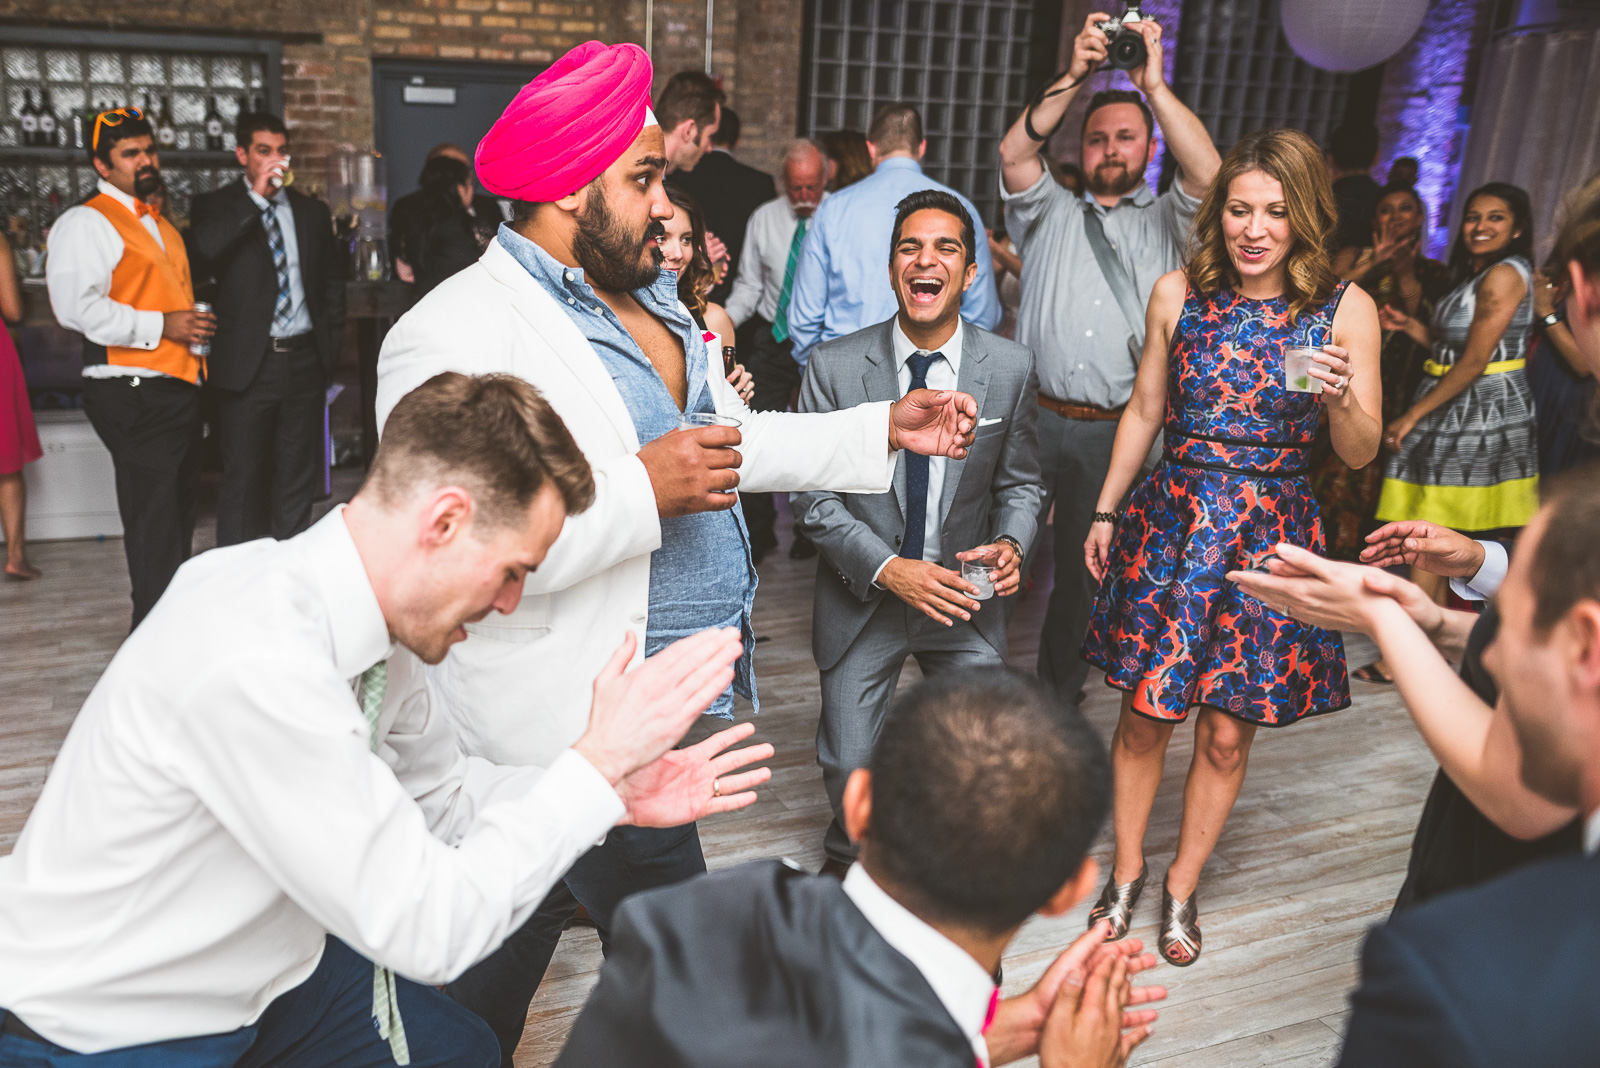 66 dancing at reception - Jackie + Raj // Chicago Wedding Photography at Floating World Gallery